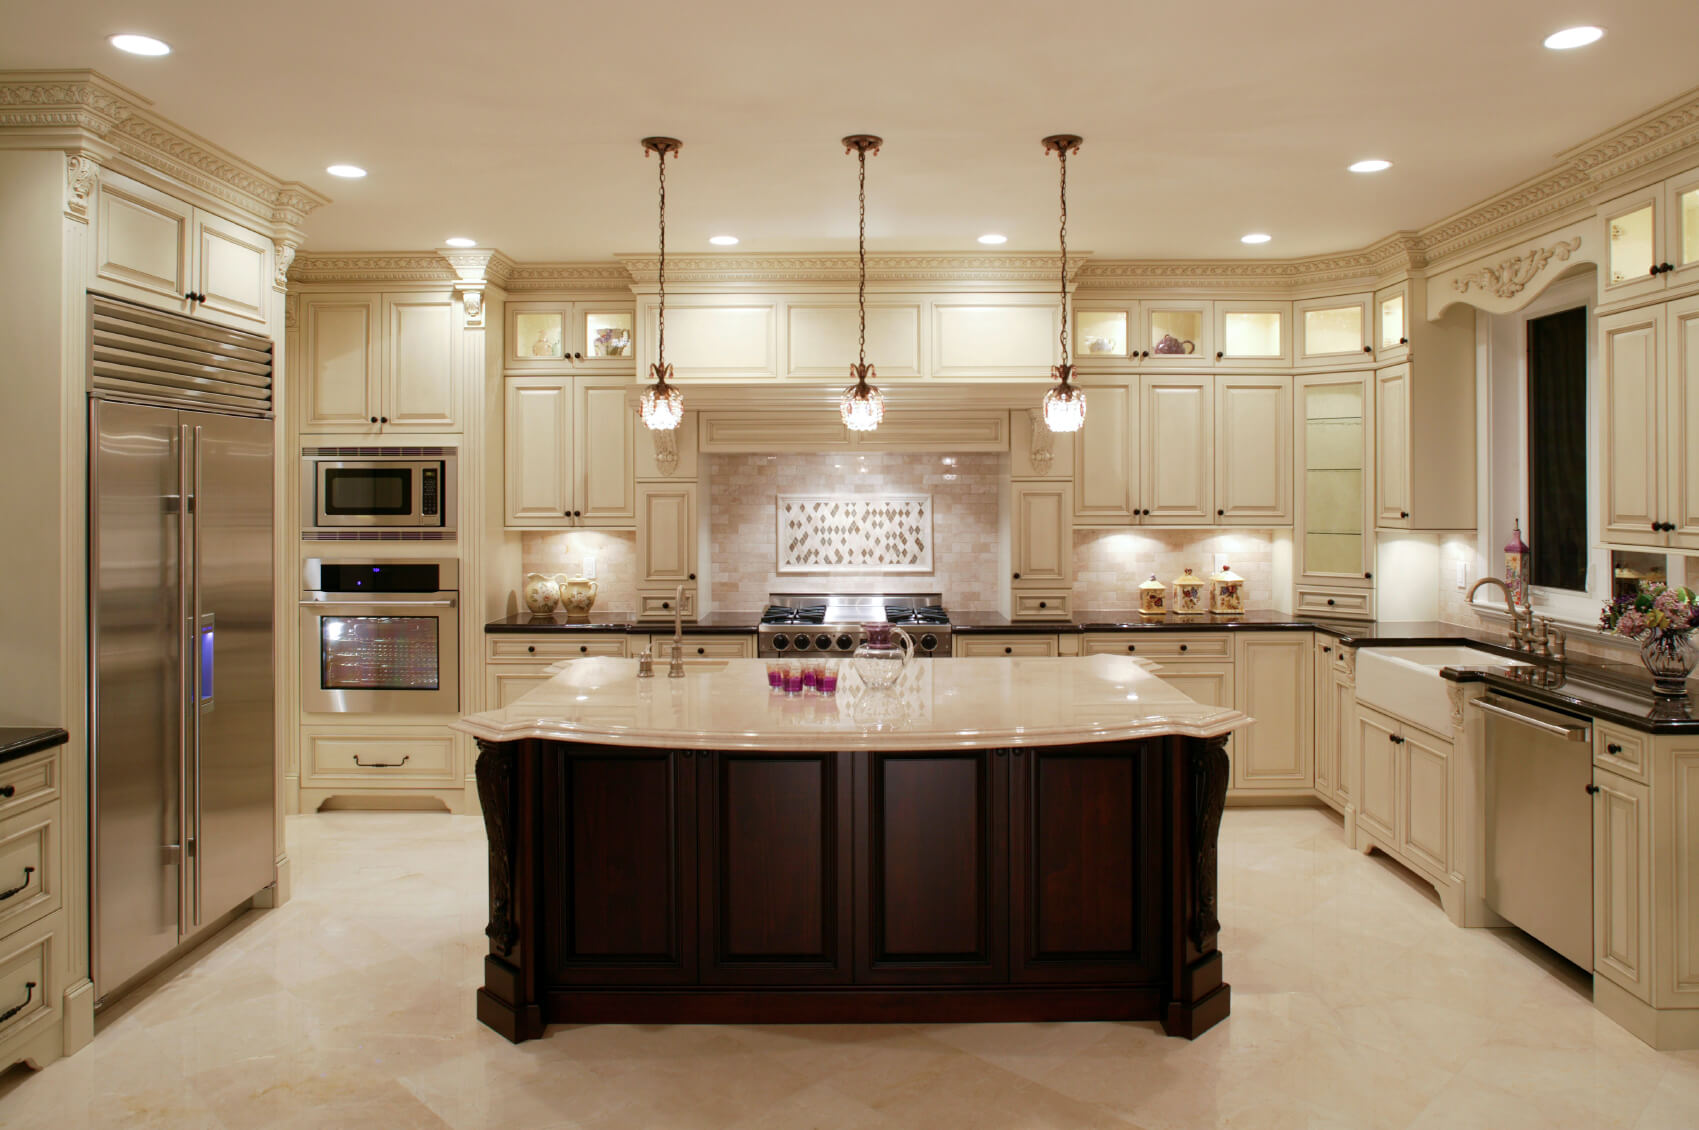 luxury ushaped kitchen designs  layouts photos, Kitchen design